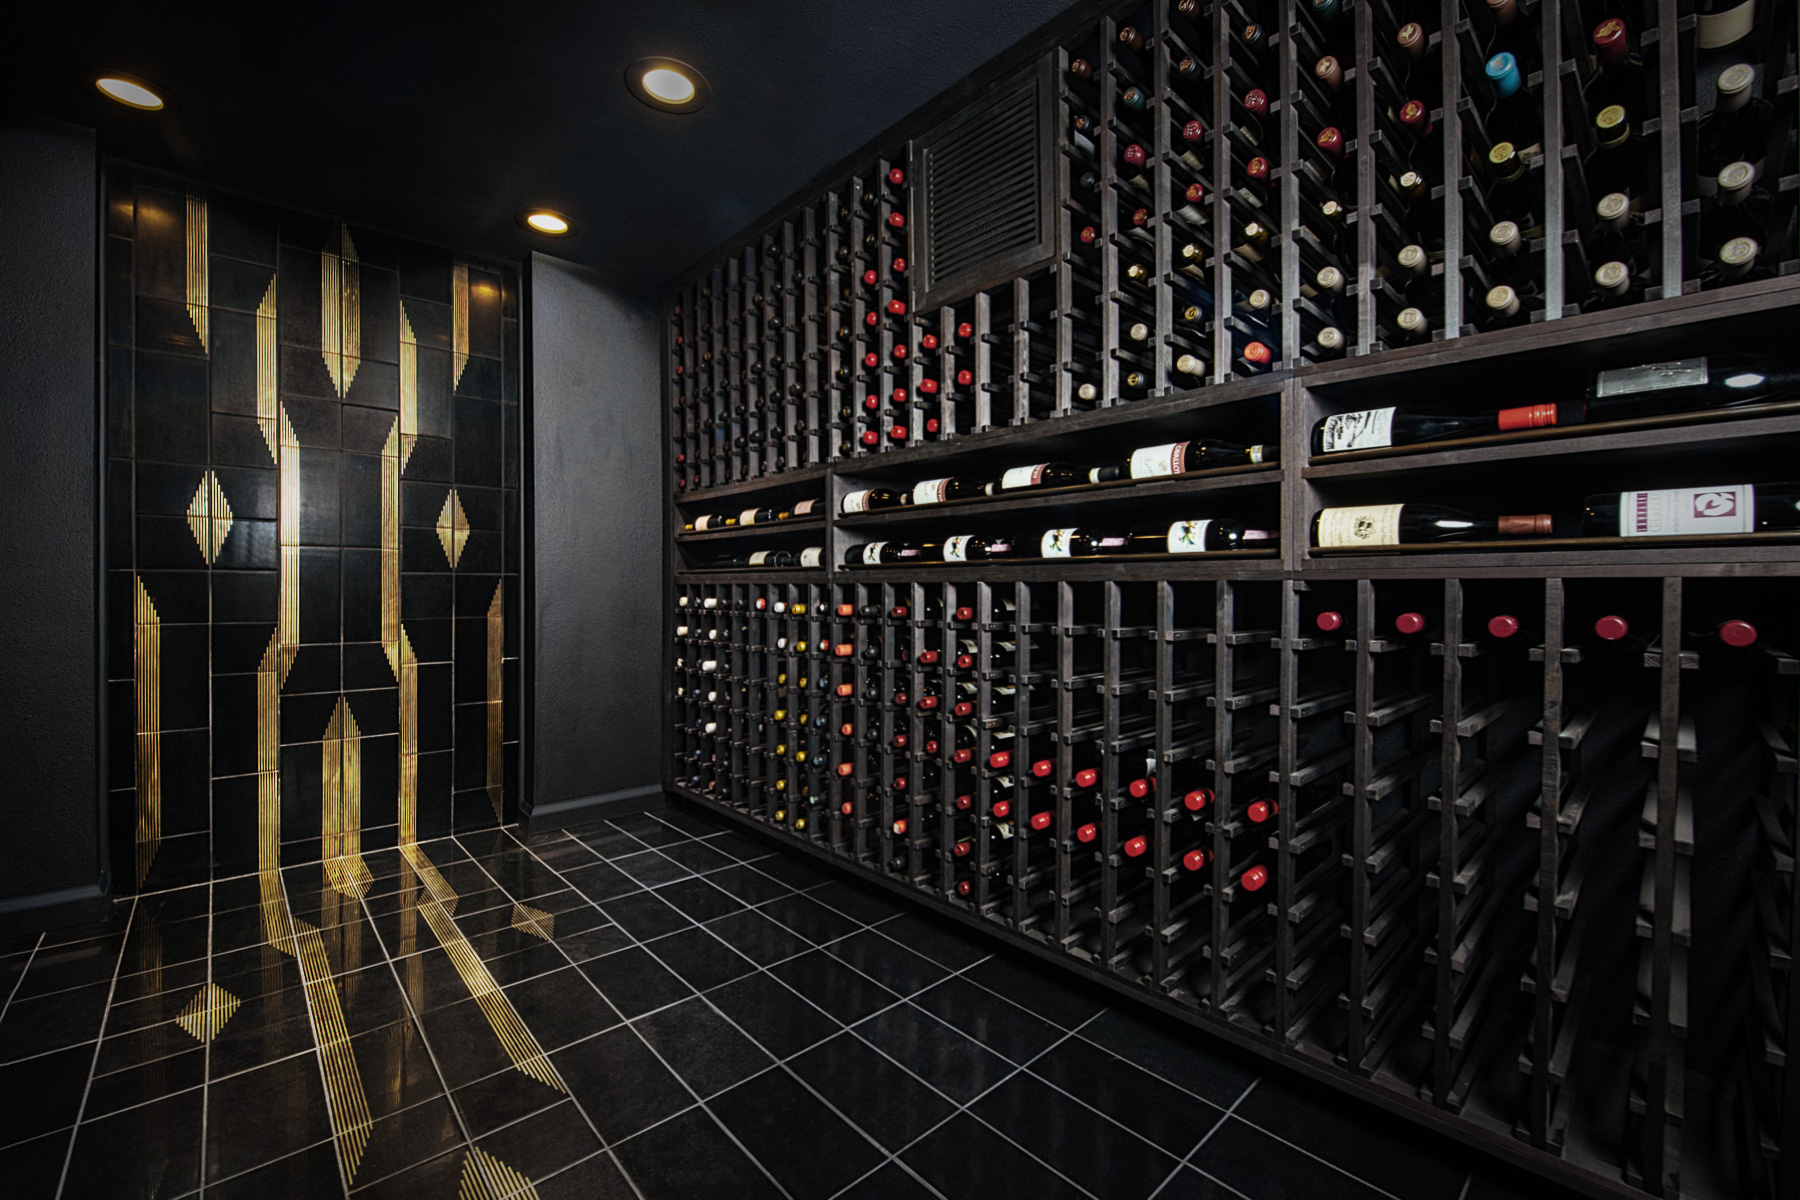 It's okay to be daring when it comes to modern wine cellar design. This Art Deco inspired tiled wall treatment makes a big statement in an otherwise sleek wine room.